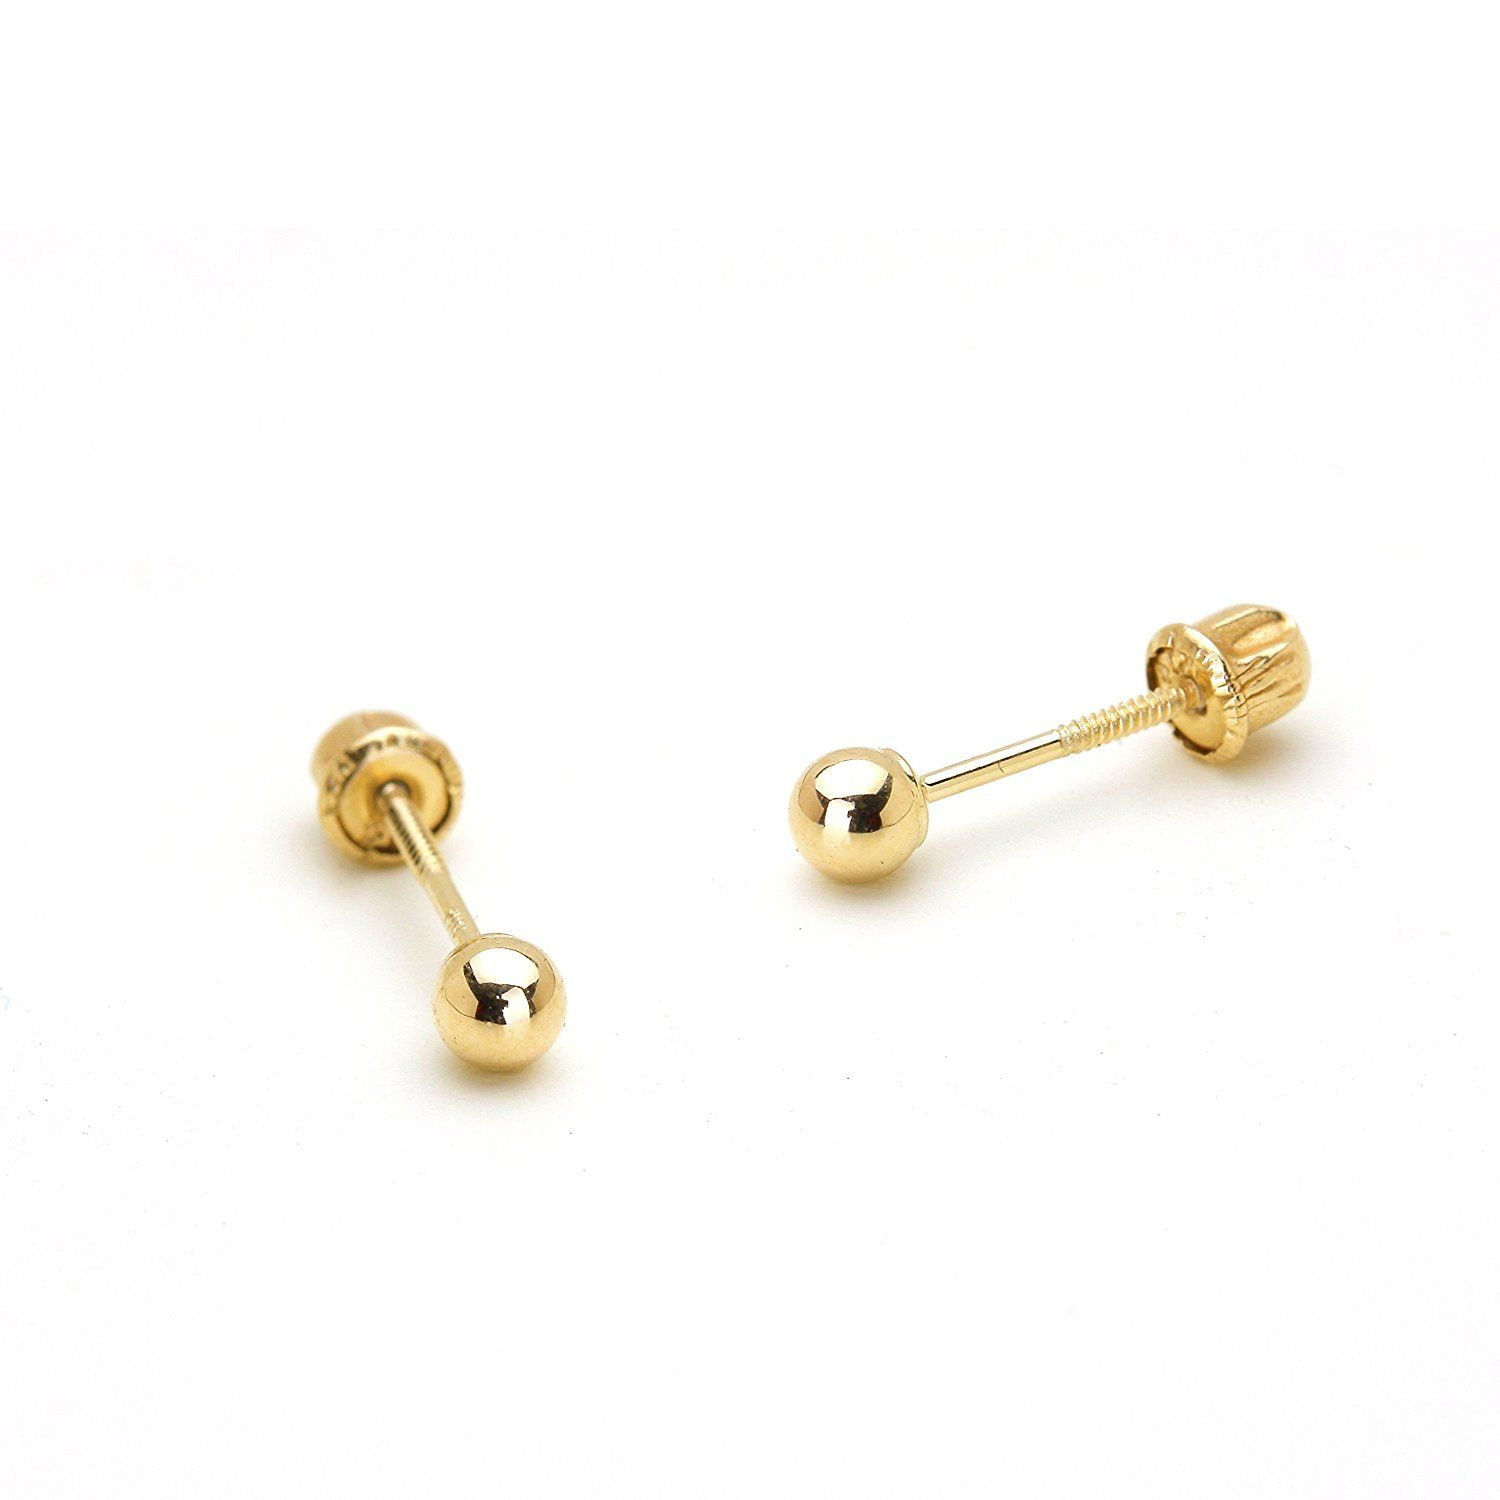 c54650abe Amazon.com: 14k Yellow Gold 3mm Plain Hollow Gold Ball Children Screw Back  Baby Girls Earrings: Clothing